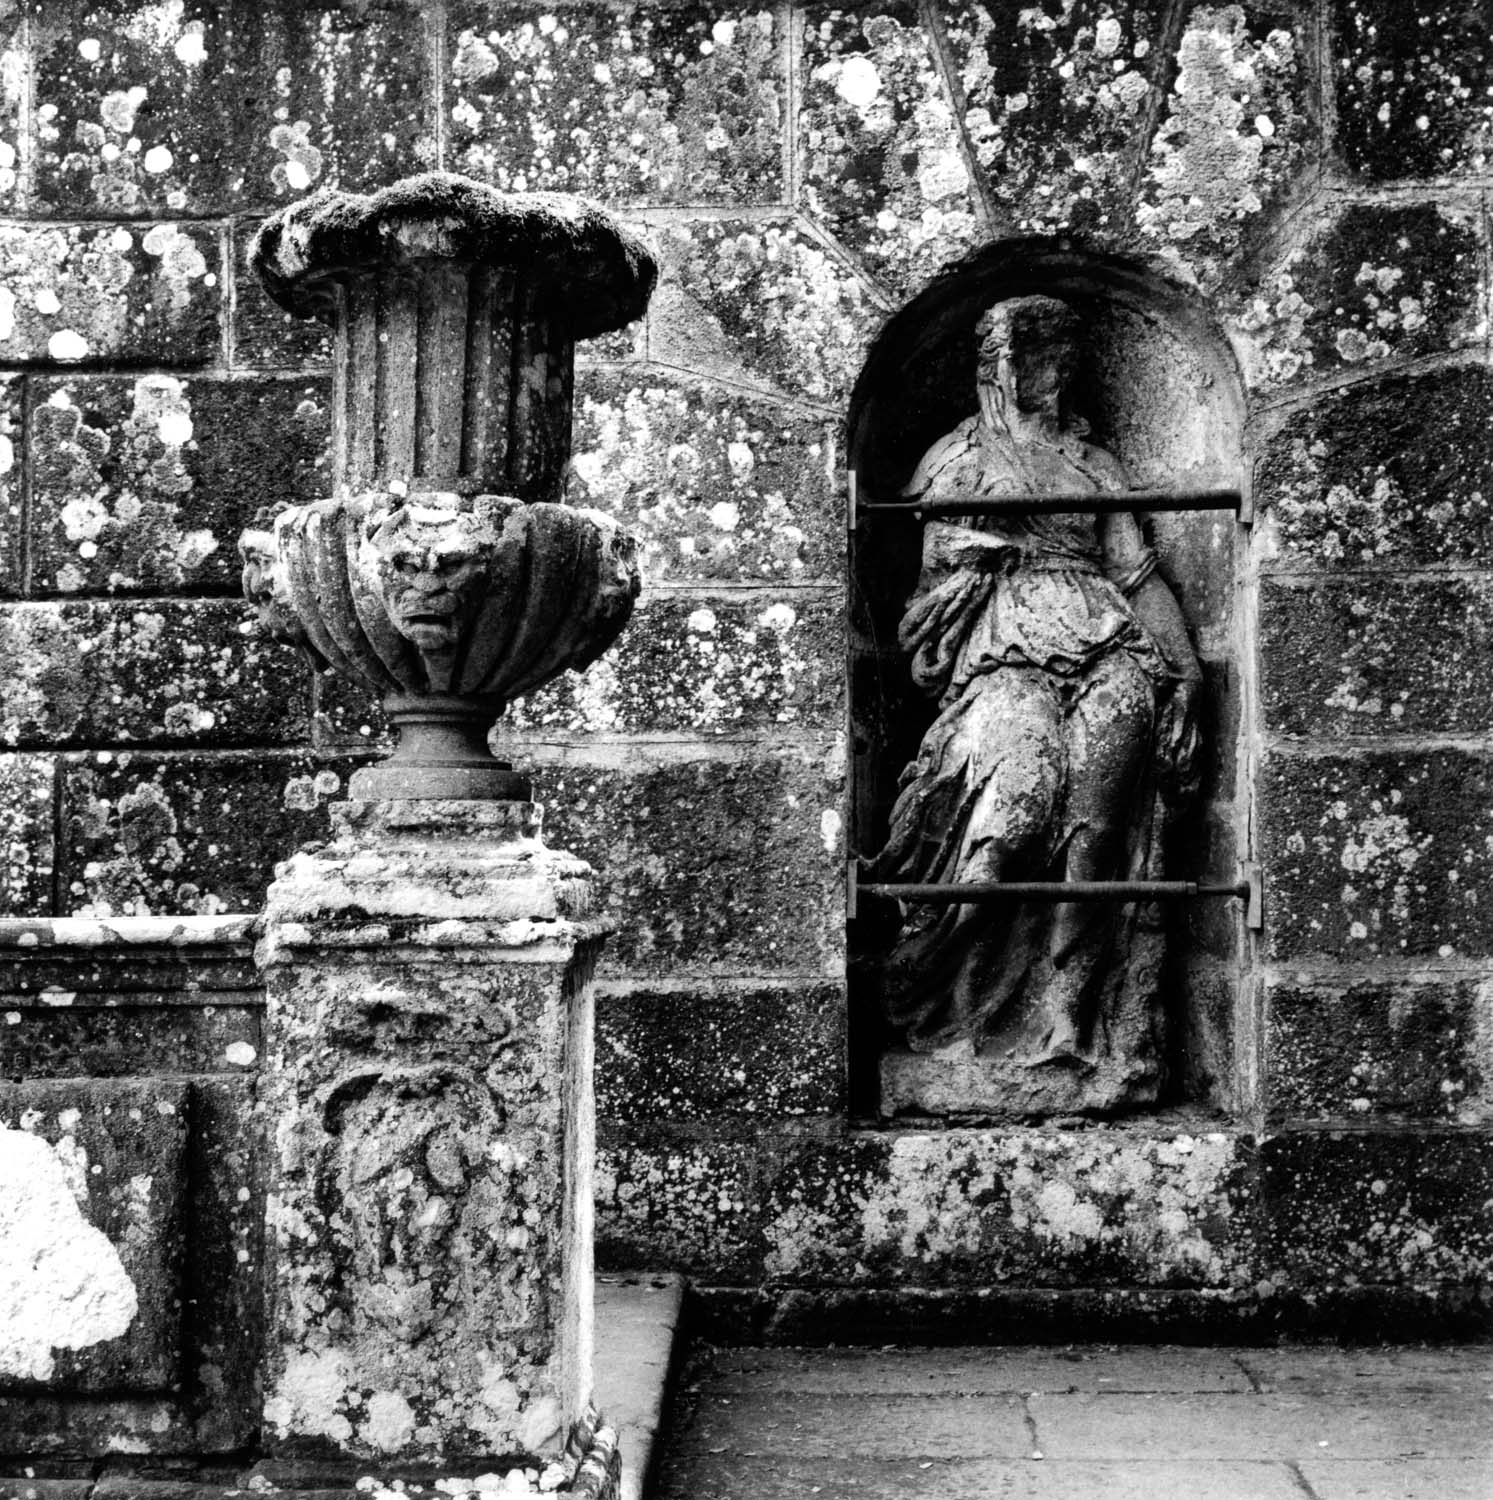 Urn and Statue with Lichens and Moss, Villa Lante